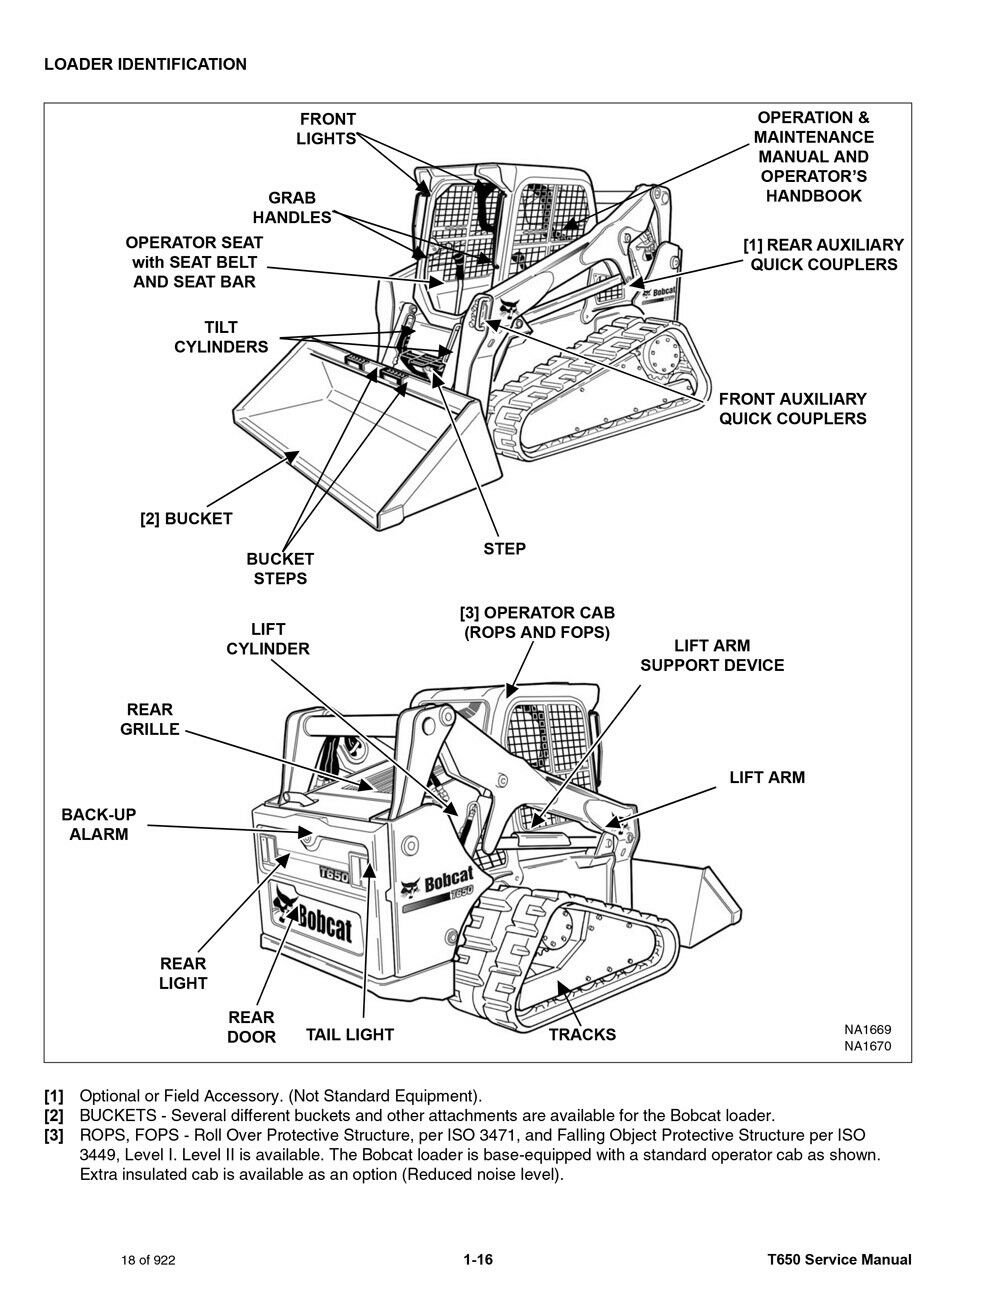 Bobcat Textron Wiring Diagram Auto Electrical New Kawasaki 650 Sx T3101 Mower Riding Charging